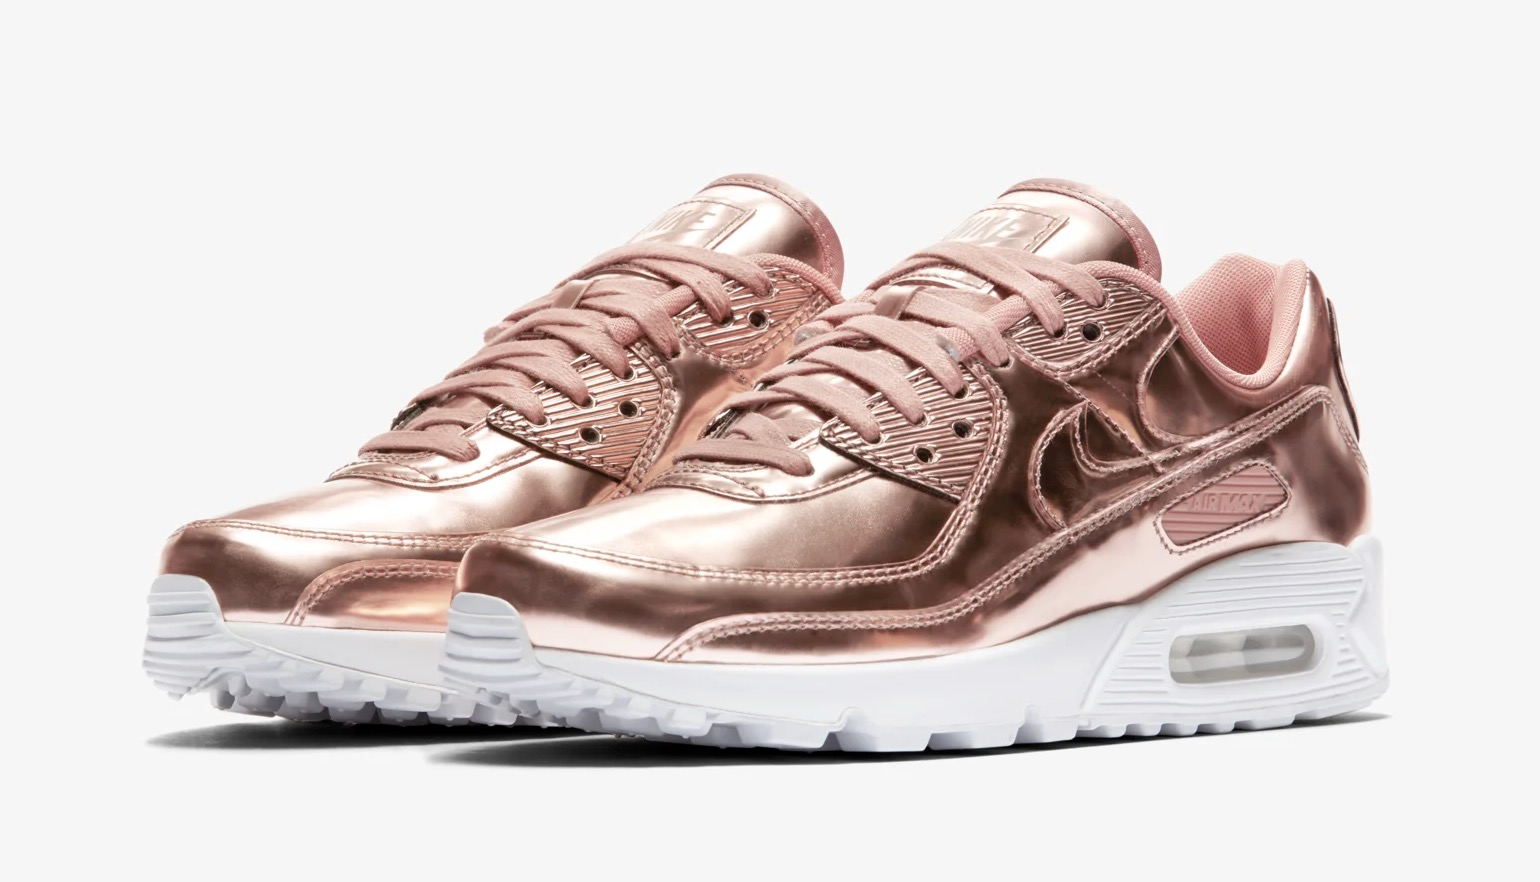 Nike Air Max 90 Rose Gold Liquid Metal